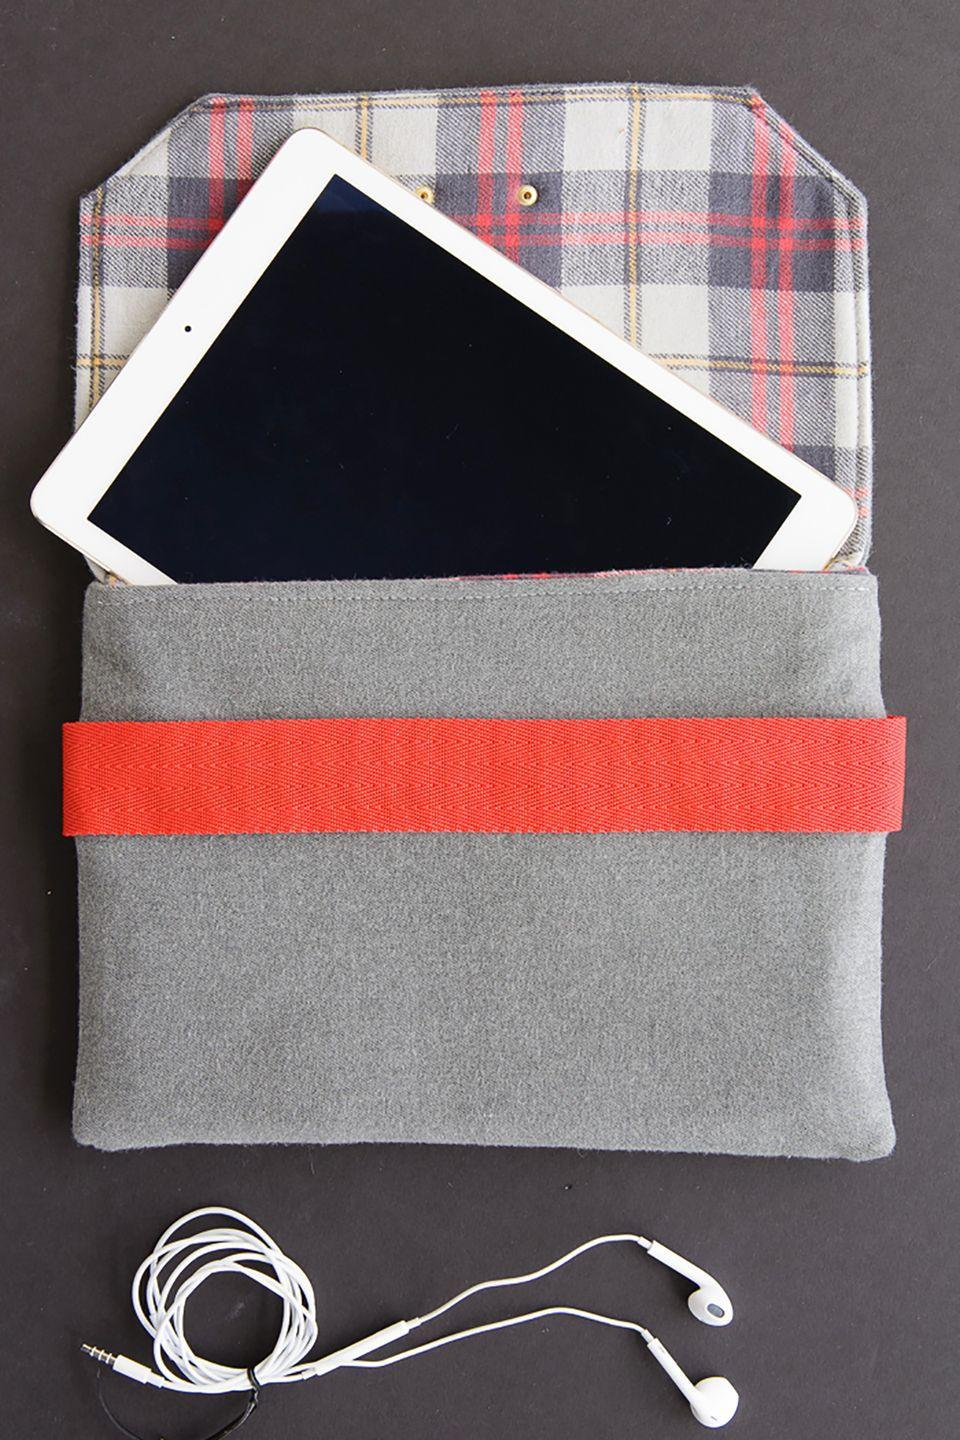 """<p>If you enjoy sewing, this wool case makes a wonderful gift for dads who often travel with their iPad. A nifty back pocket allows for storage of other small items like keys or headphones.</p><p><strong>Get the tutorial at <a href=""""http://www.polkadotchair.com/2015/06/wool-ipad-case-sewing-pattern.html/#_a5y_p=4515461"""" rel=""""nofollow noopener"""" target=""""_blank"""" data-ylk=""""slk:Polka Dot Chair"""" class=""""link rapid-noclick-resp"""">Polka Dot Chair</a></strong>. </p>"""